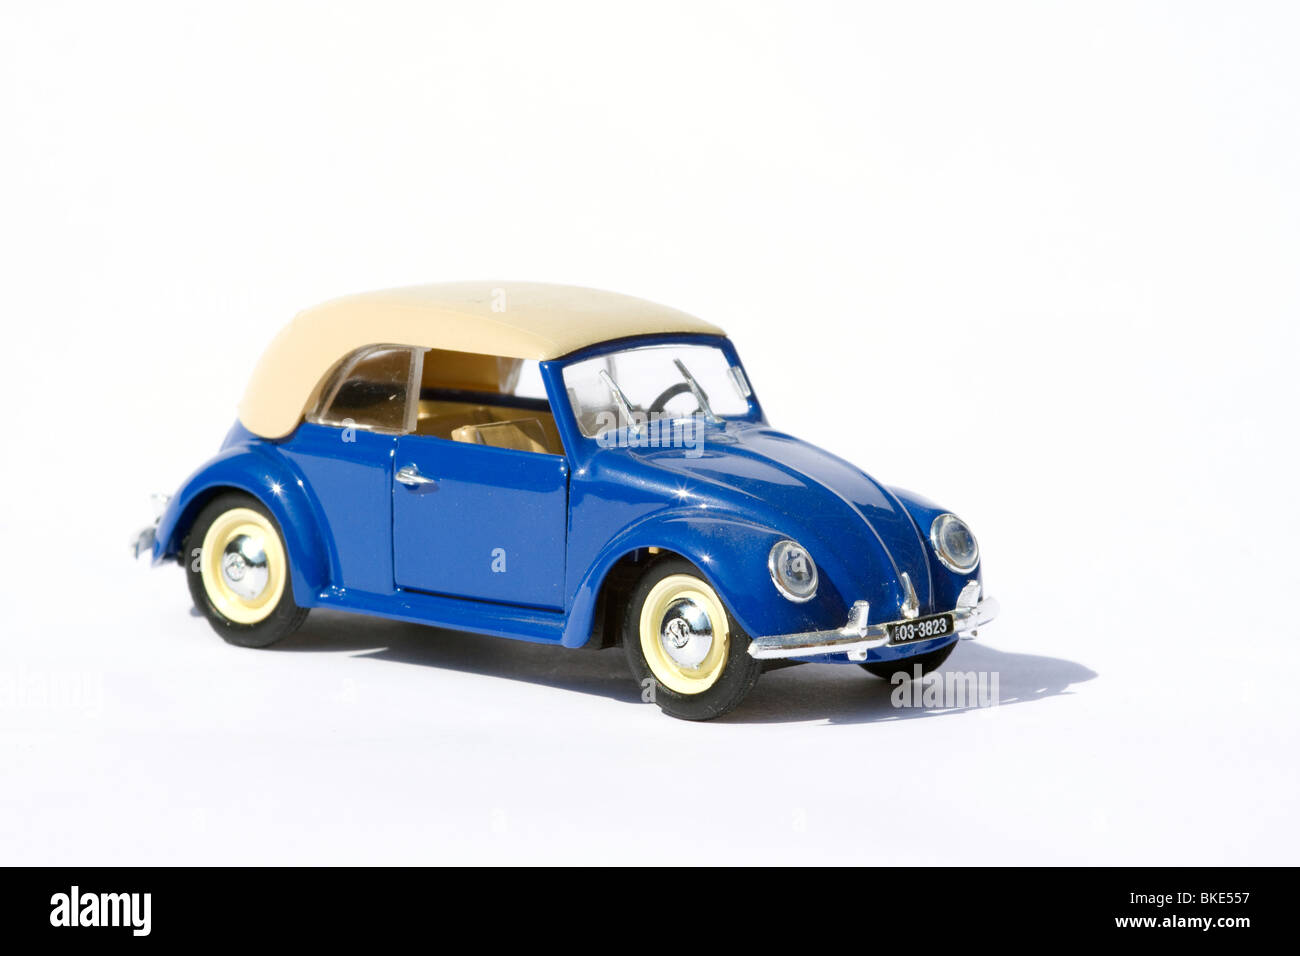 Children's collectible model of a volkswagen toy convertible beetle on white background - Stock Image